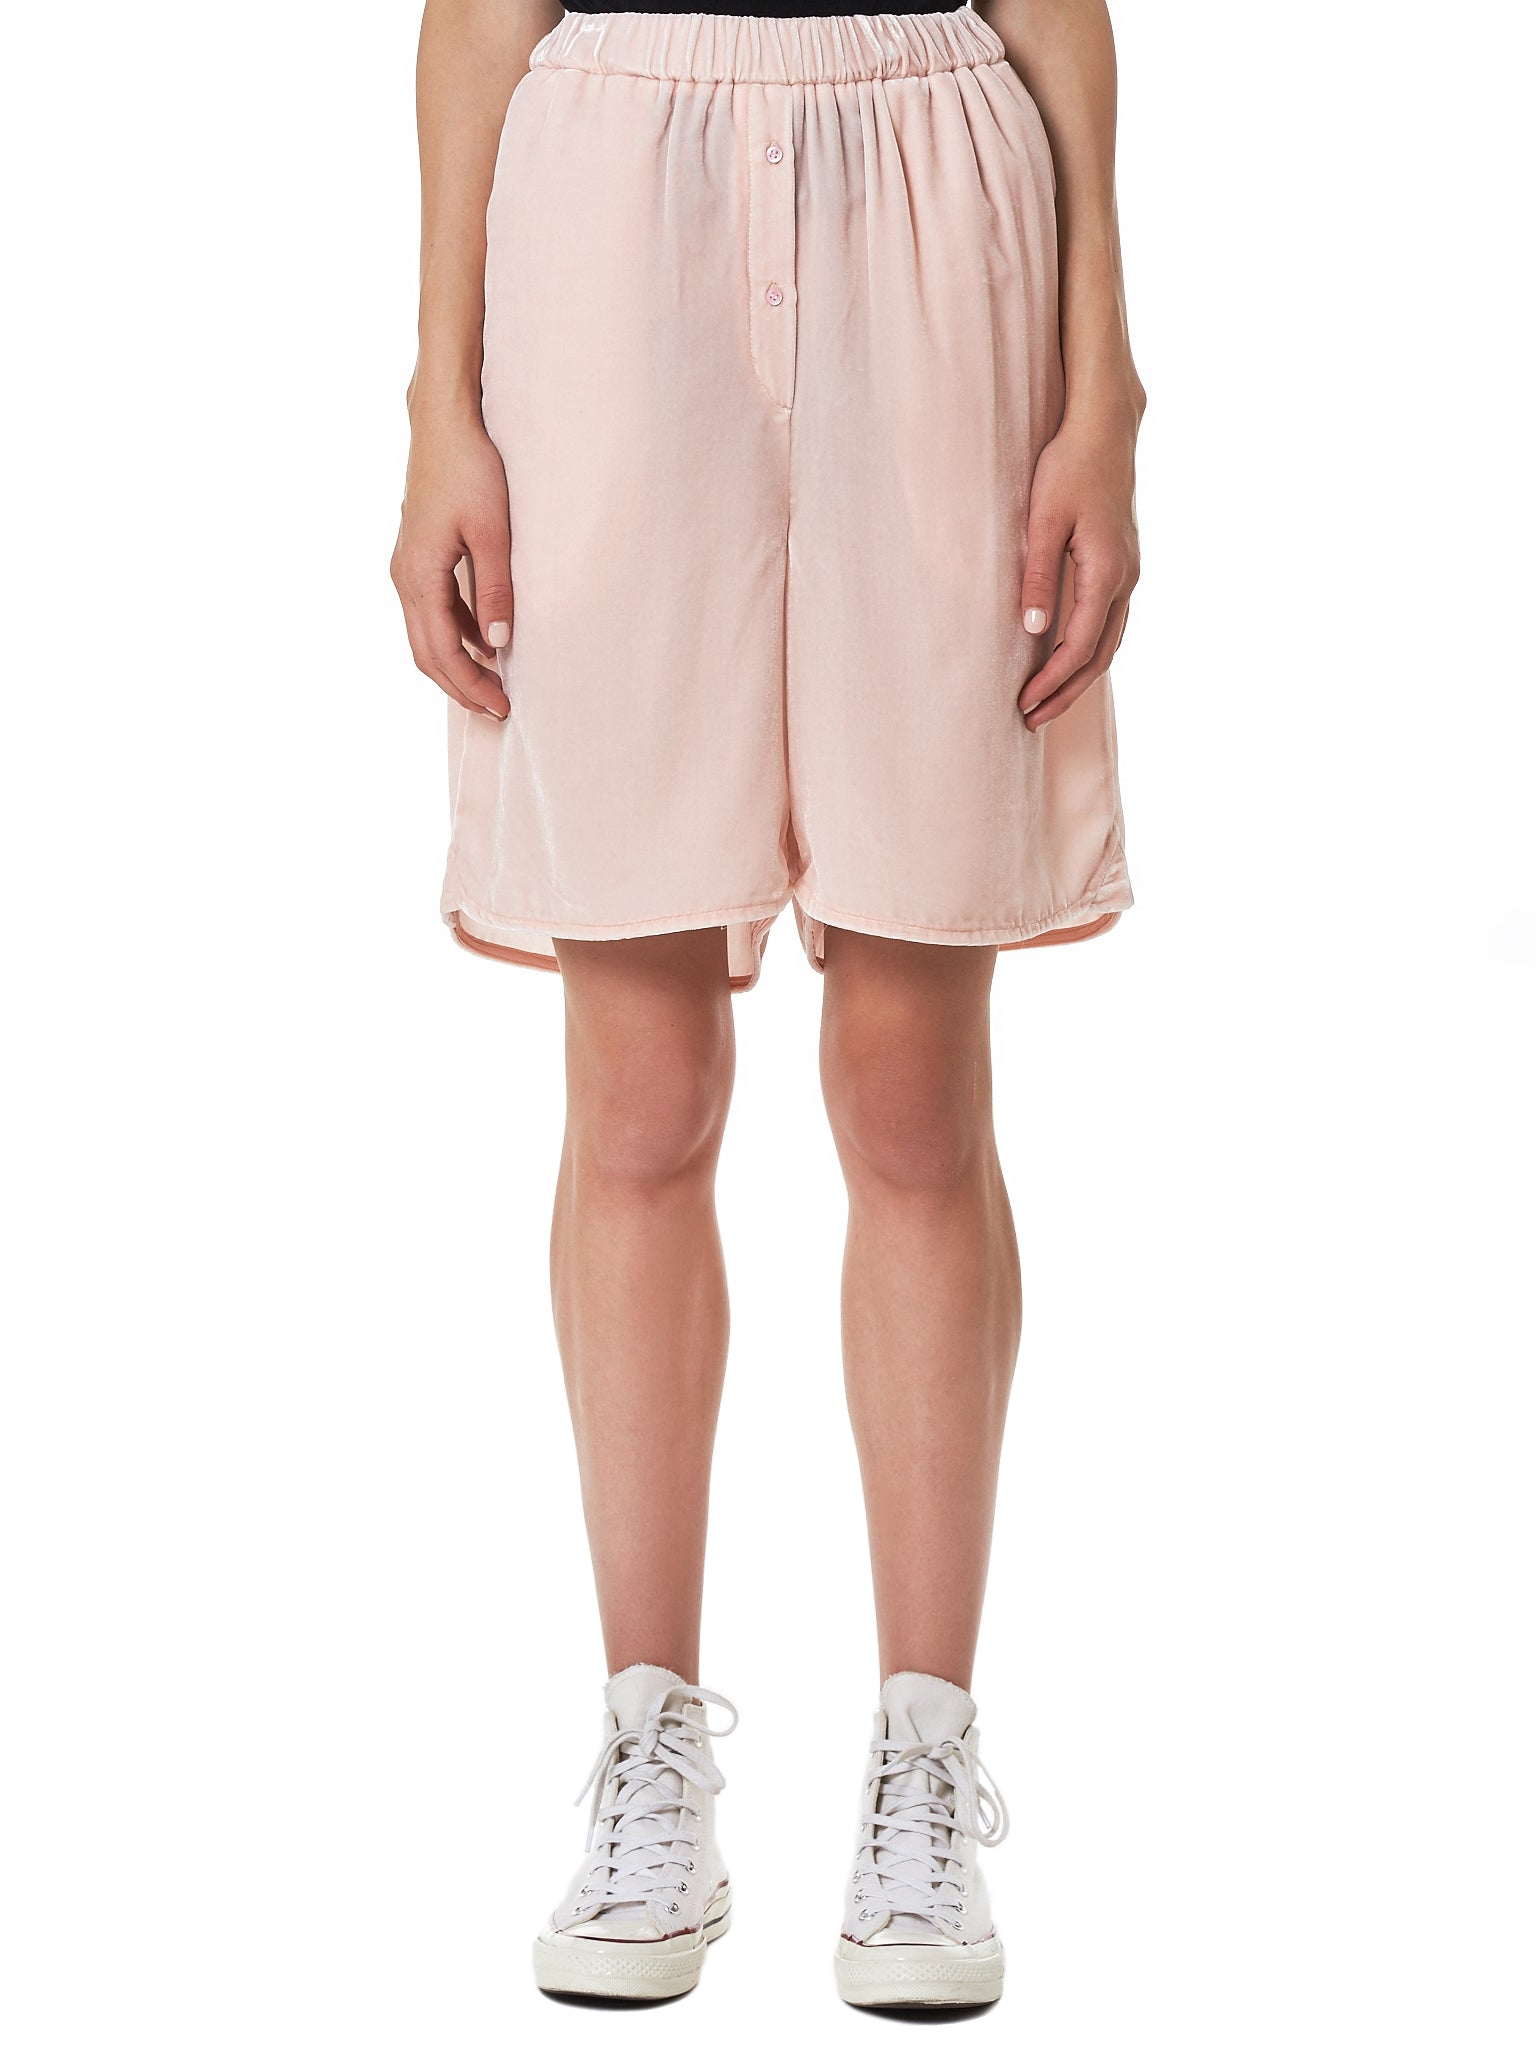 Cecilie Bahnsen Pink Shorts - Hlorenzo Front